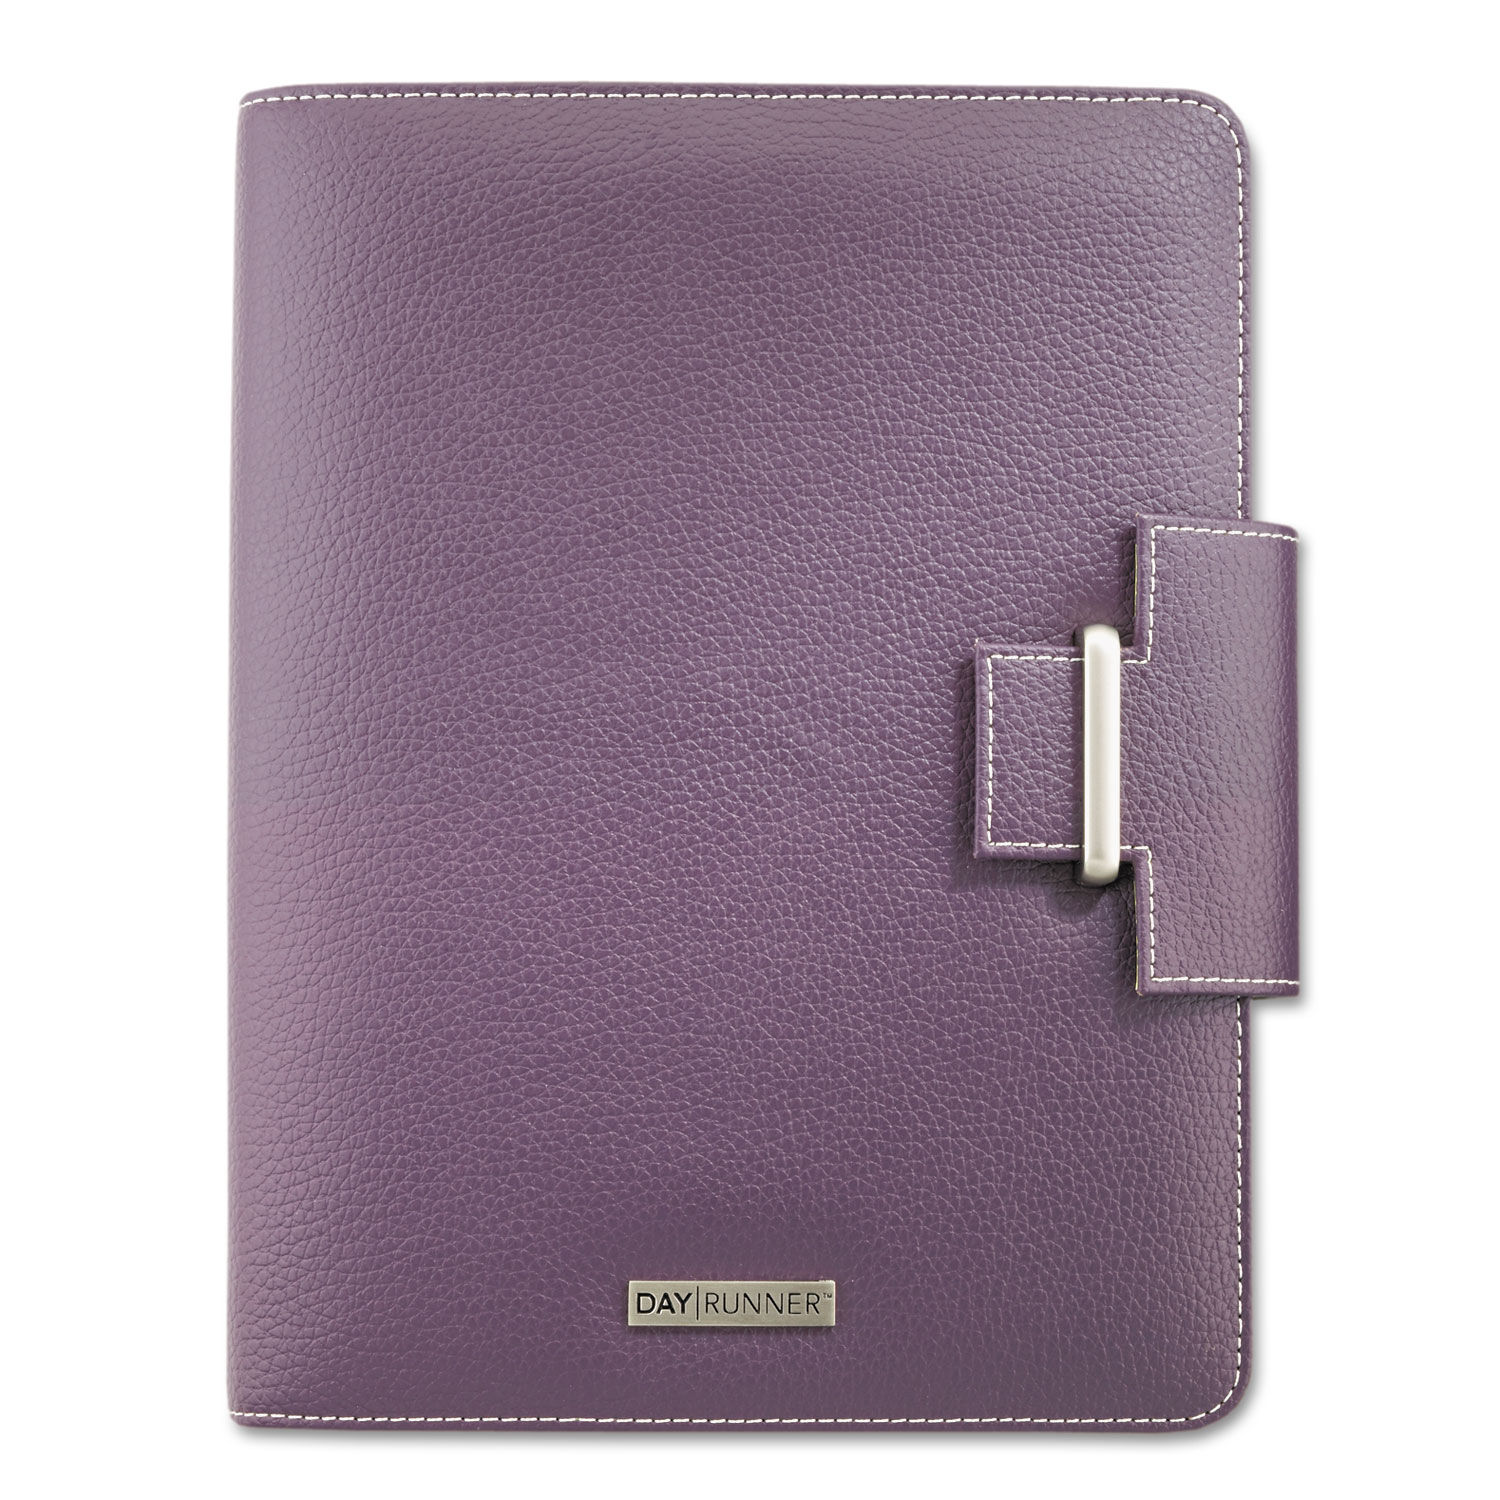 photo about Day Runner Binder identified as Terramo Refillable Planner, 8 1/2 x 5 1/2, Eggplant